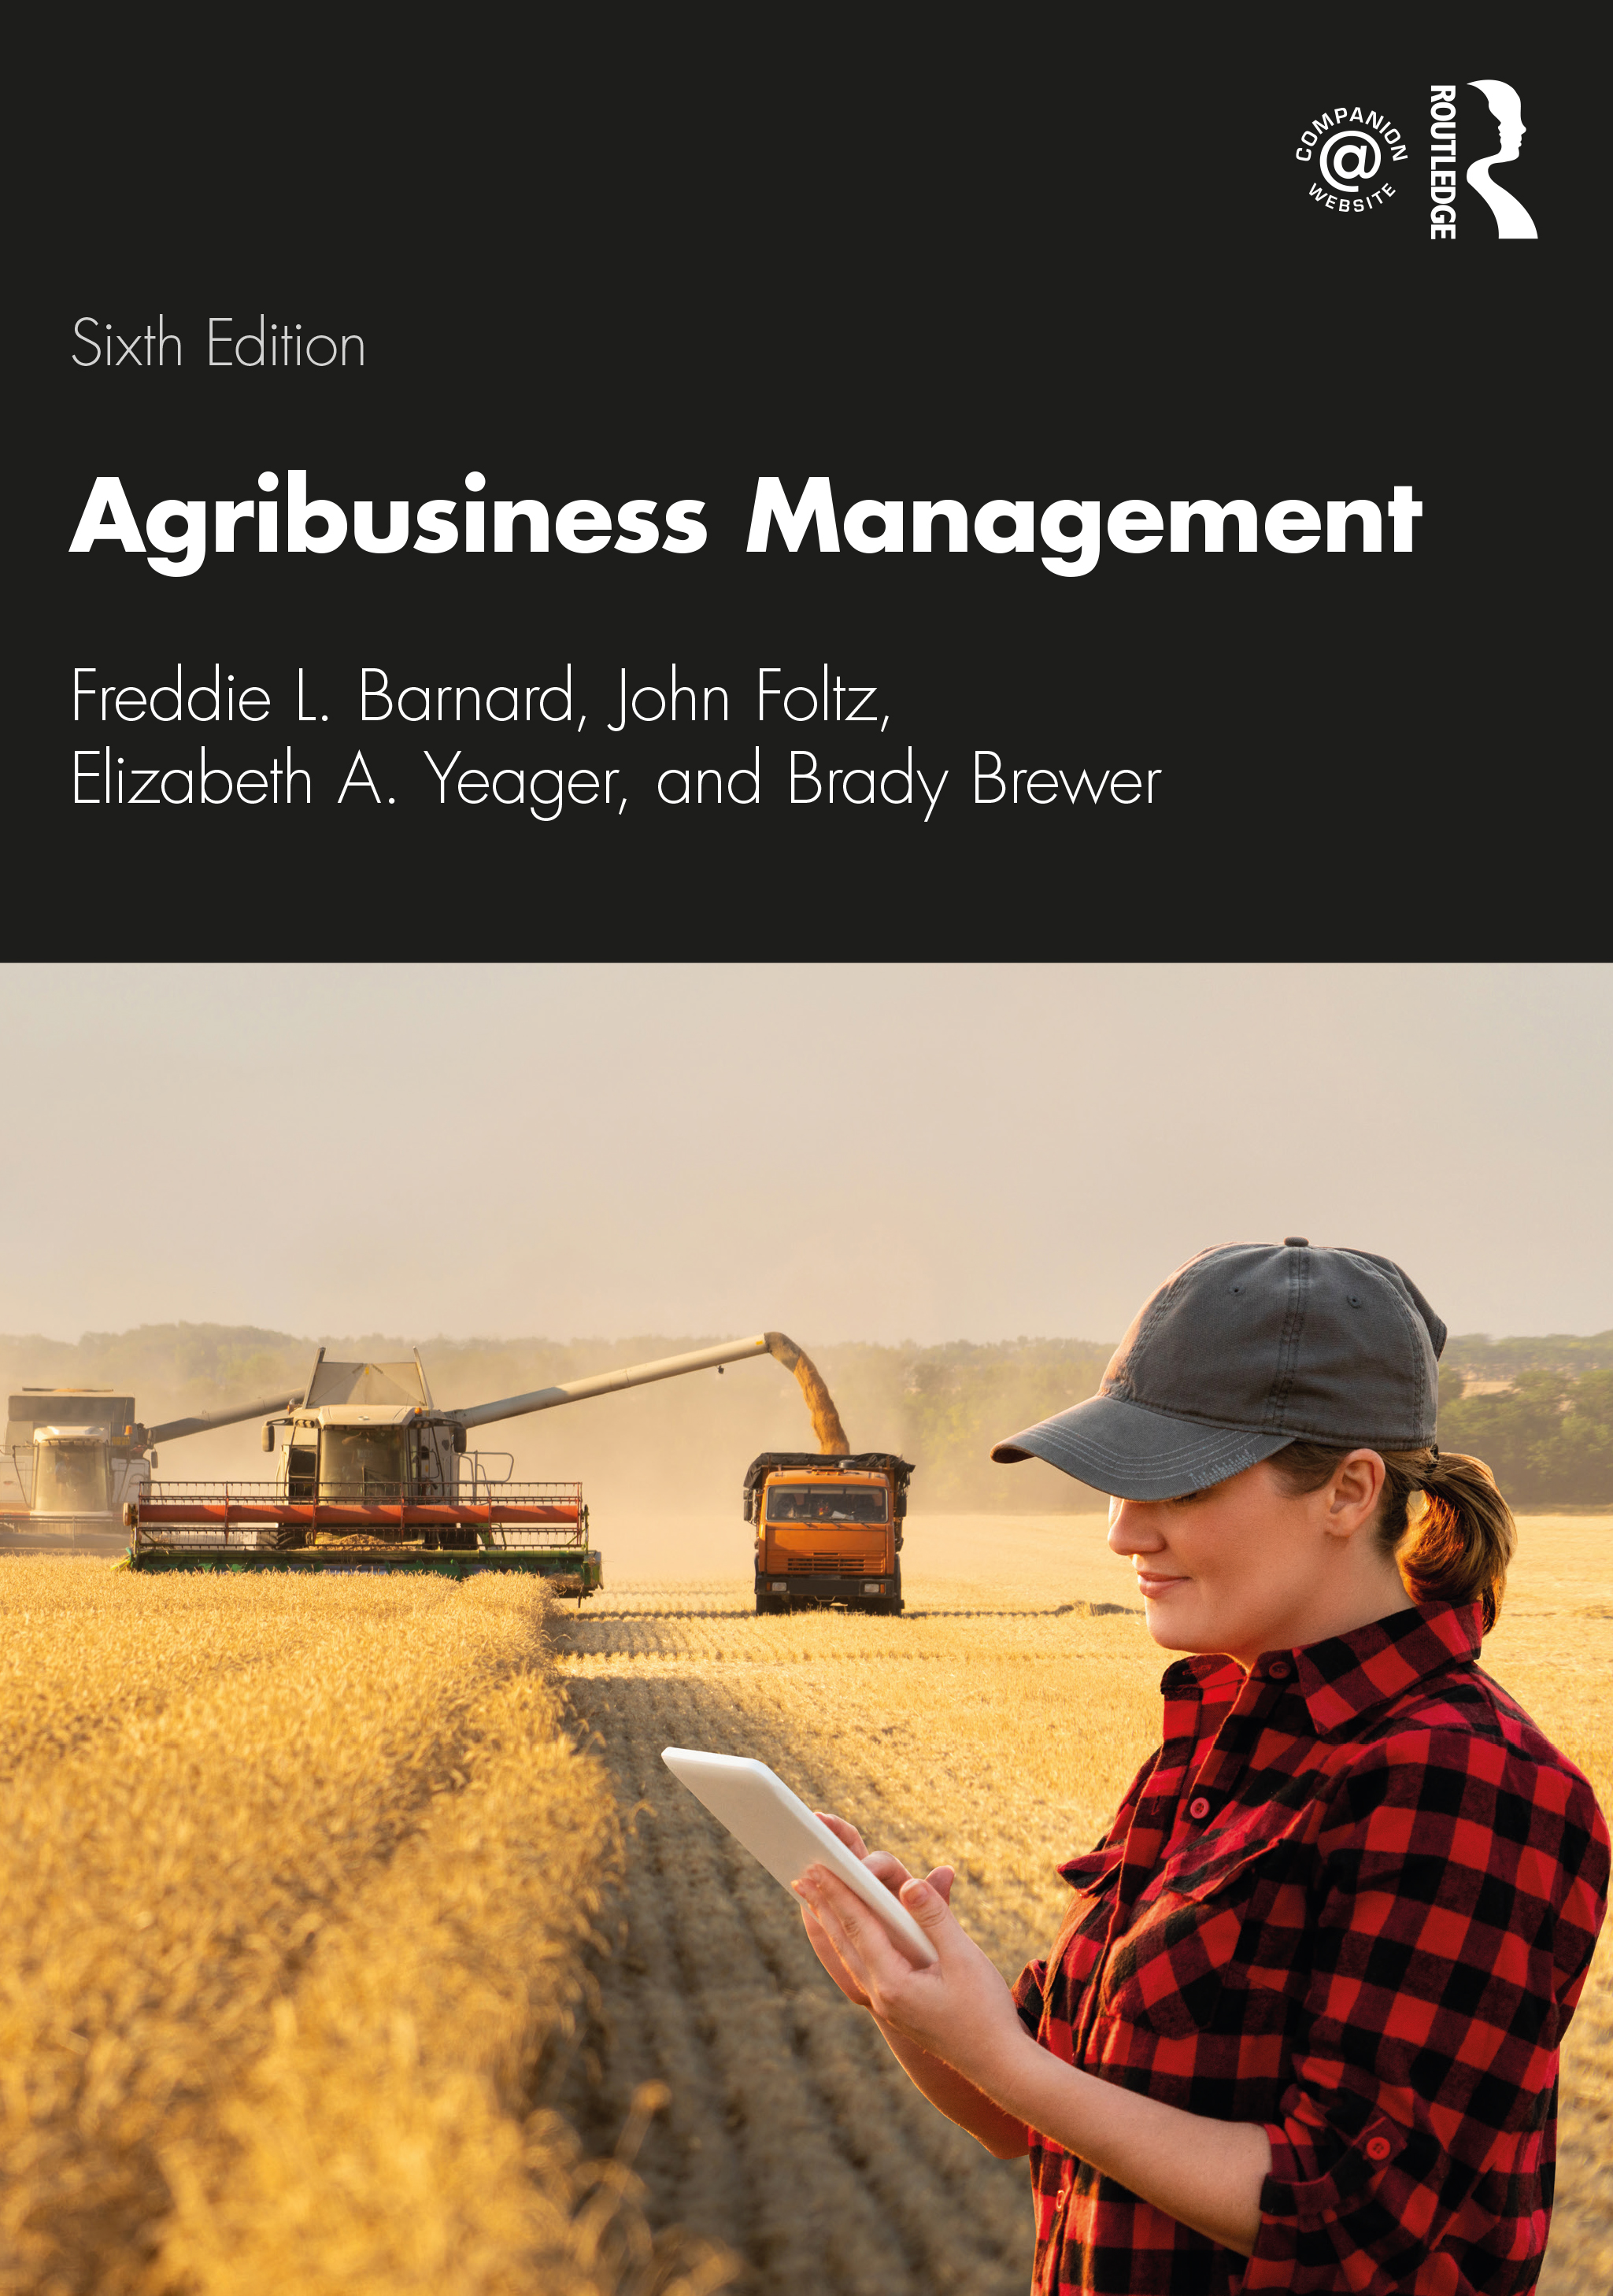 Marketing decision tools for agribusiness